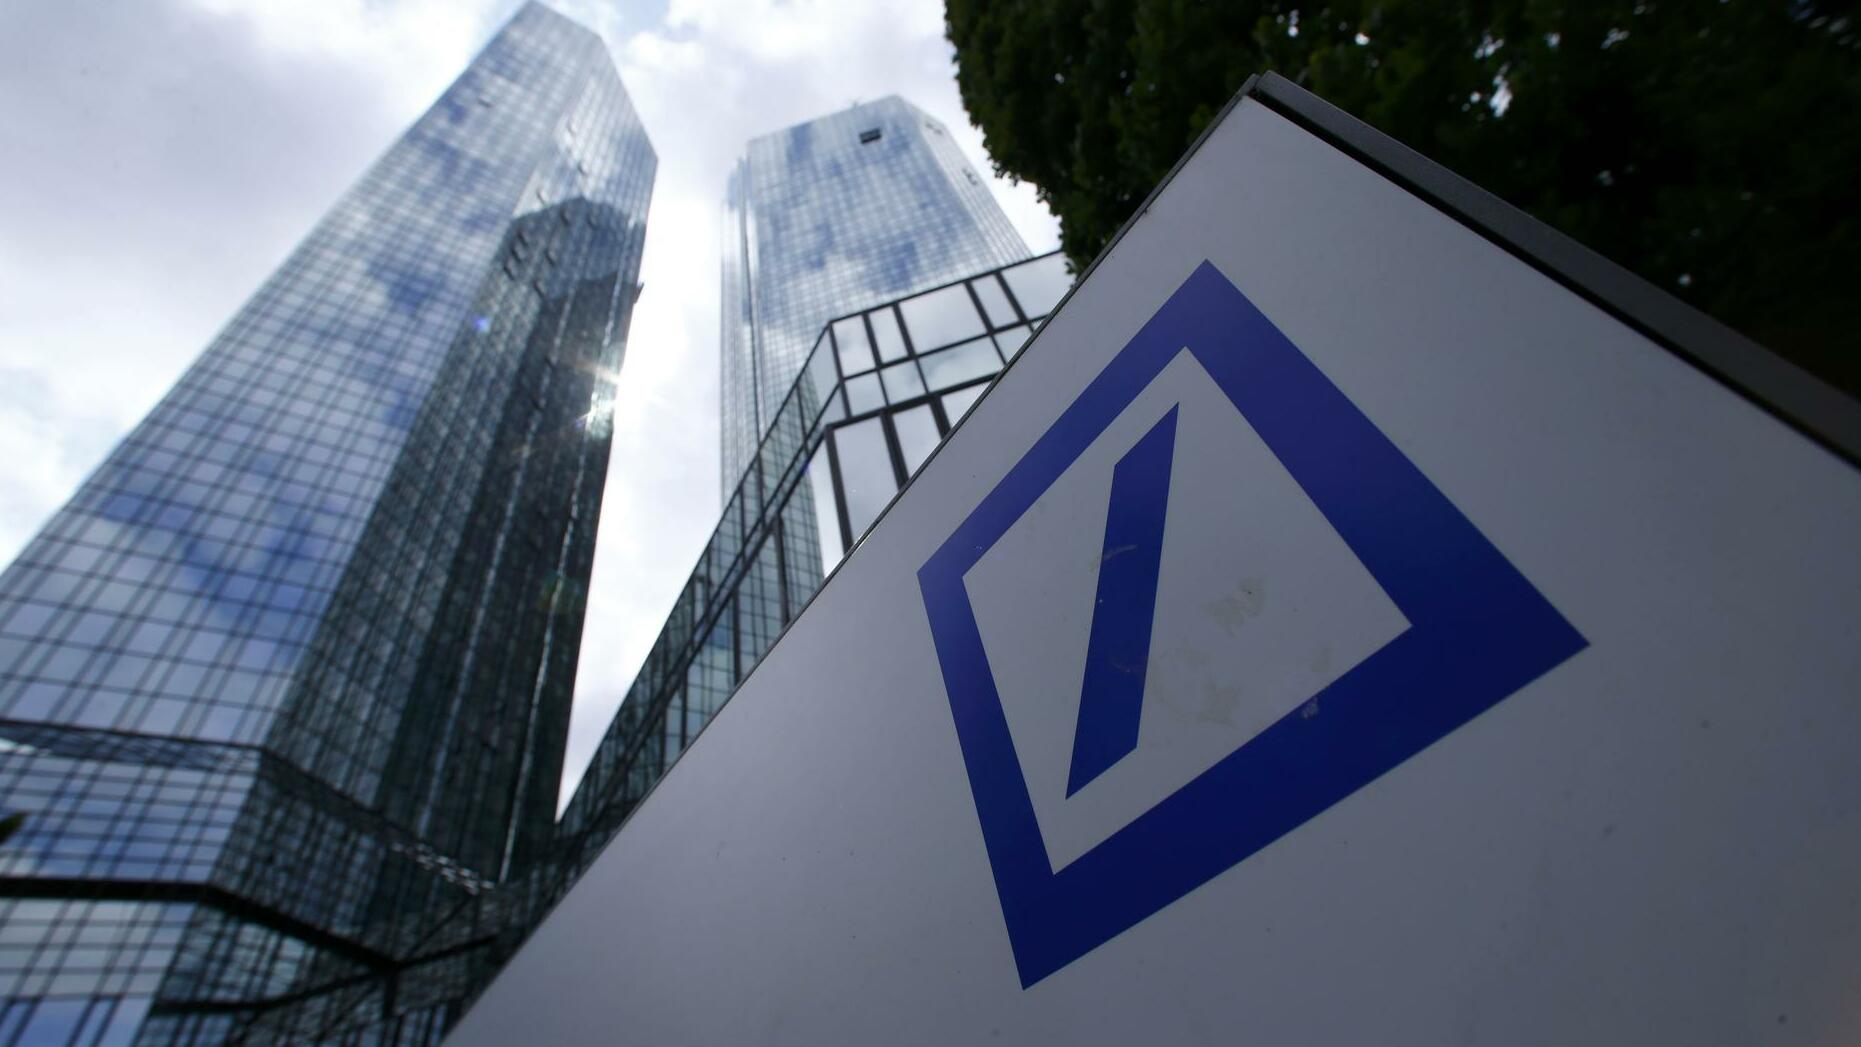 Deutsche Bank Quelle: REUTERS